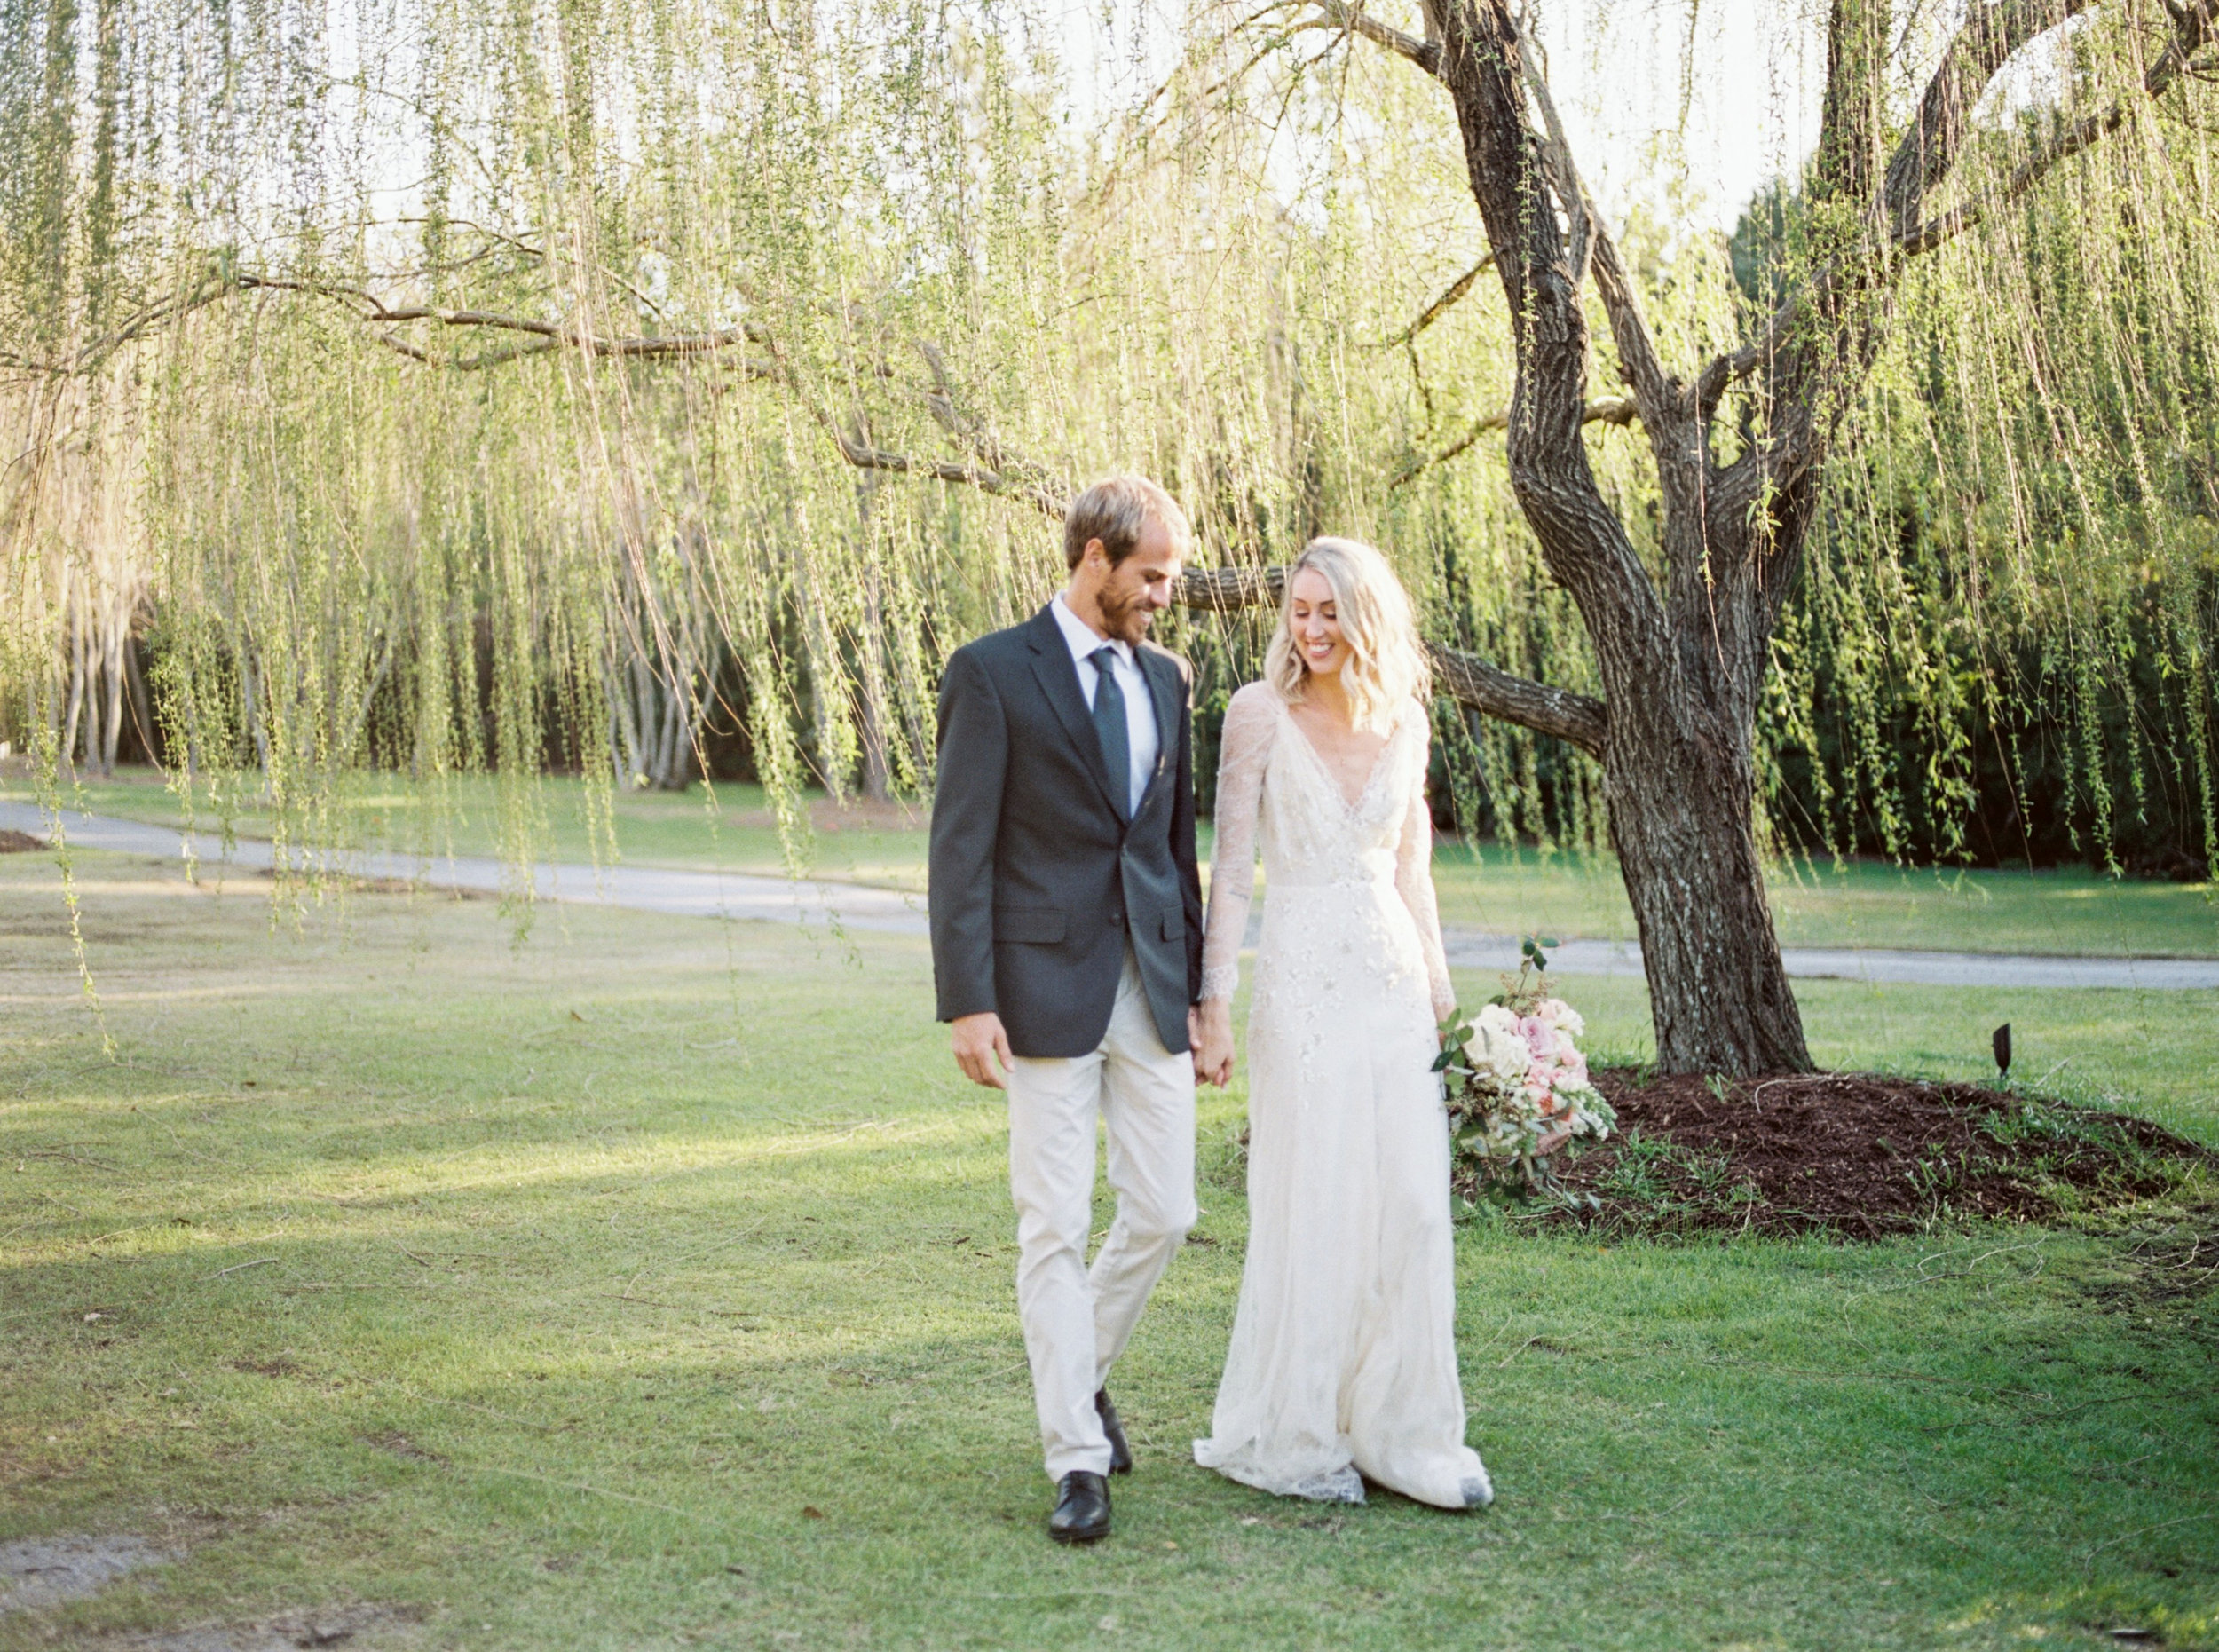 Watson House Wedding | Melissa Blythe Photography | Organic Wedding | Ivory and Blush Wedding | Blush Organic Wedding | Joy Wed | Fine Art Wedding Blog